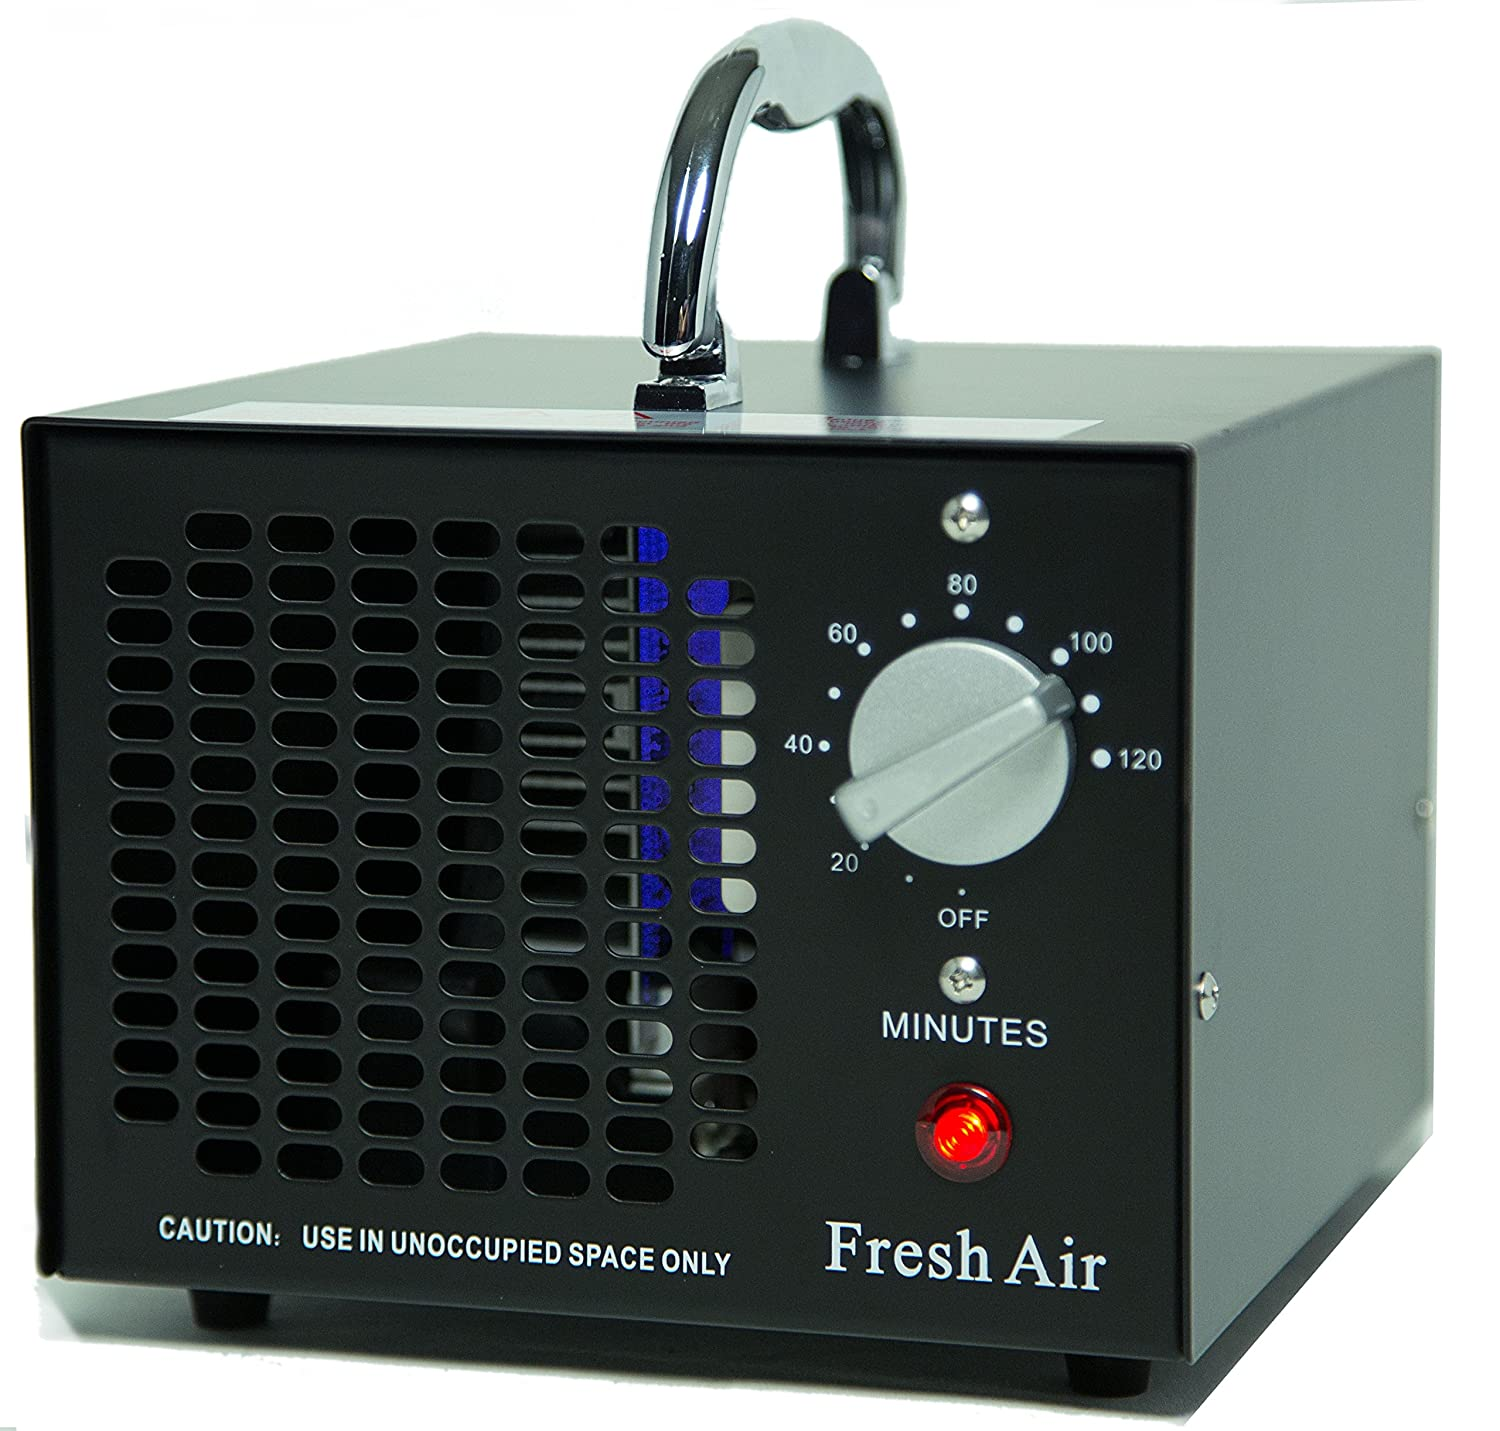 Fresh Air Commercial Air Purifier Ozone Generator 3500mg Cleaner Deodorizer (Black)